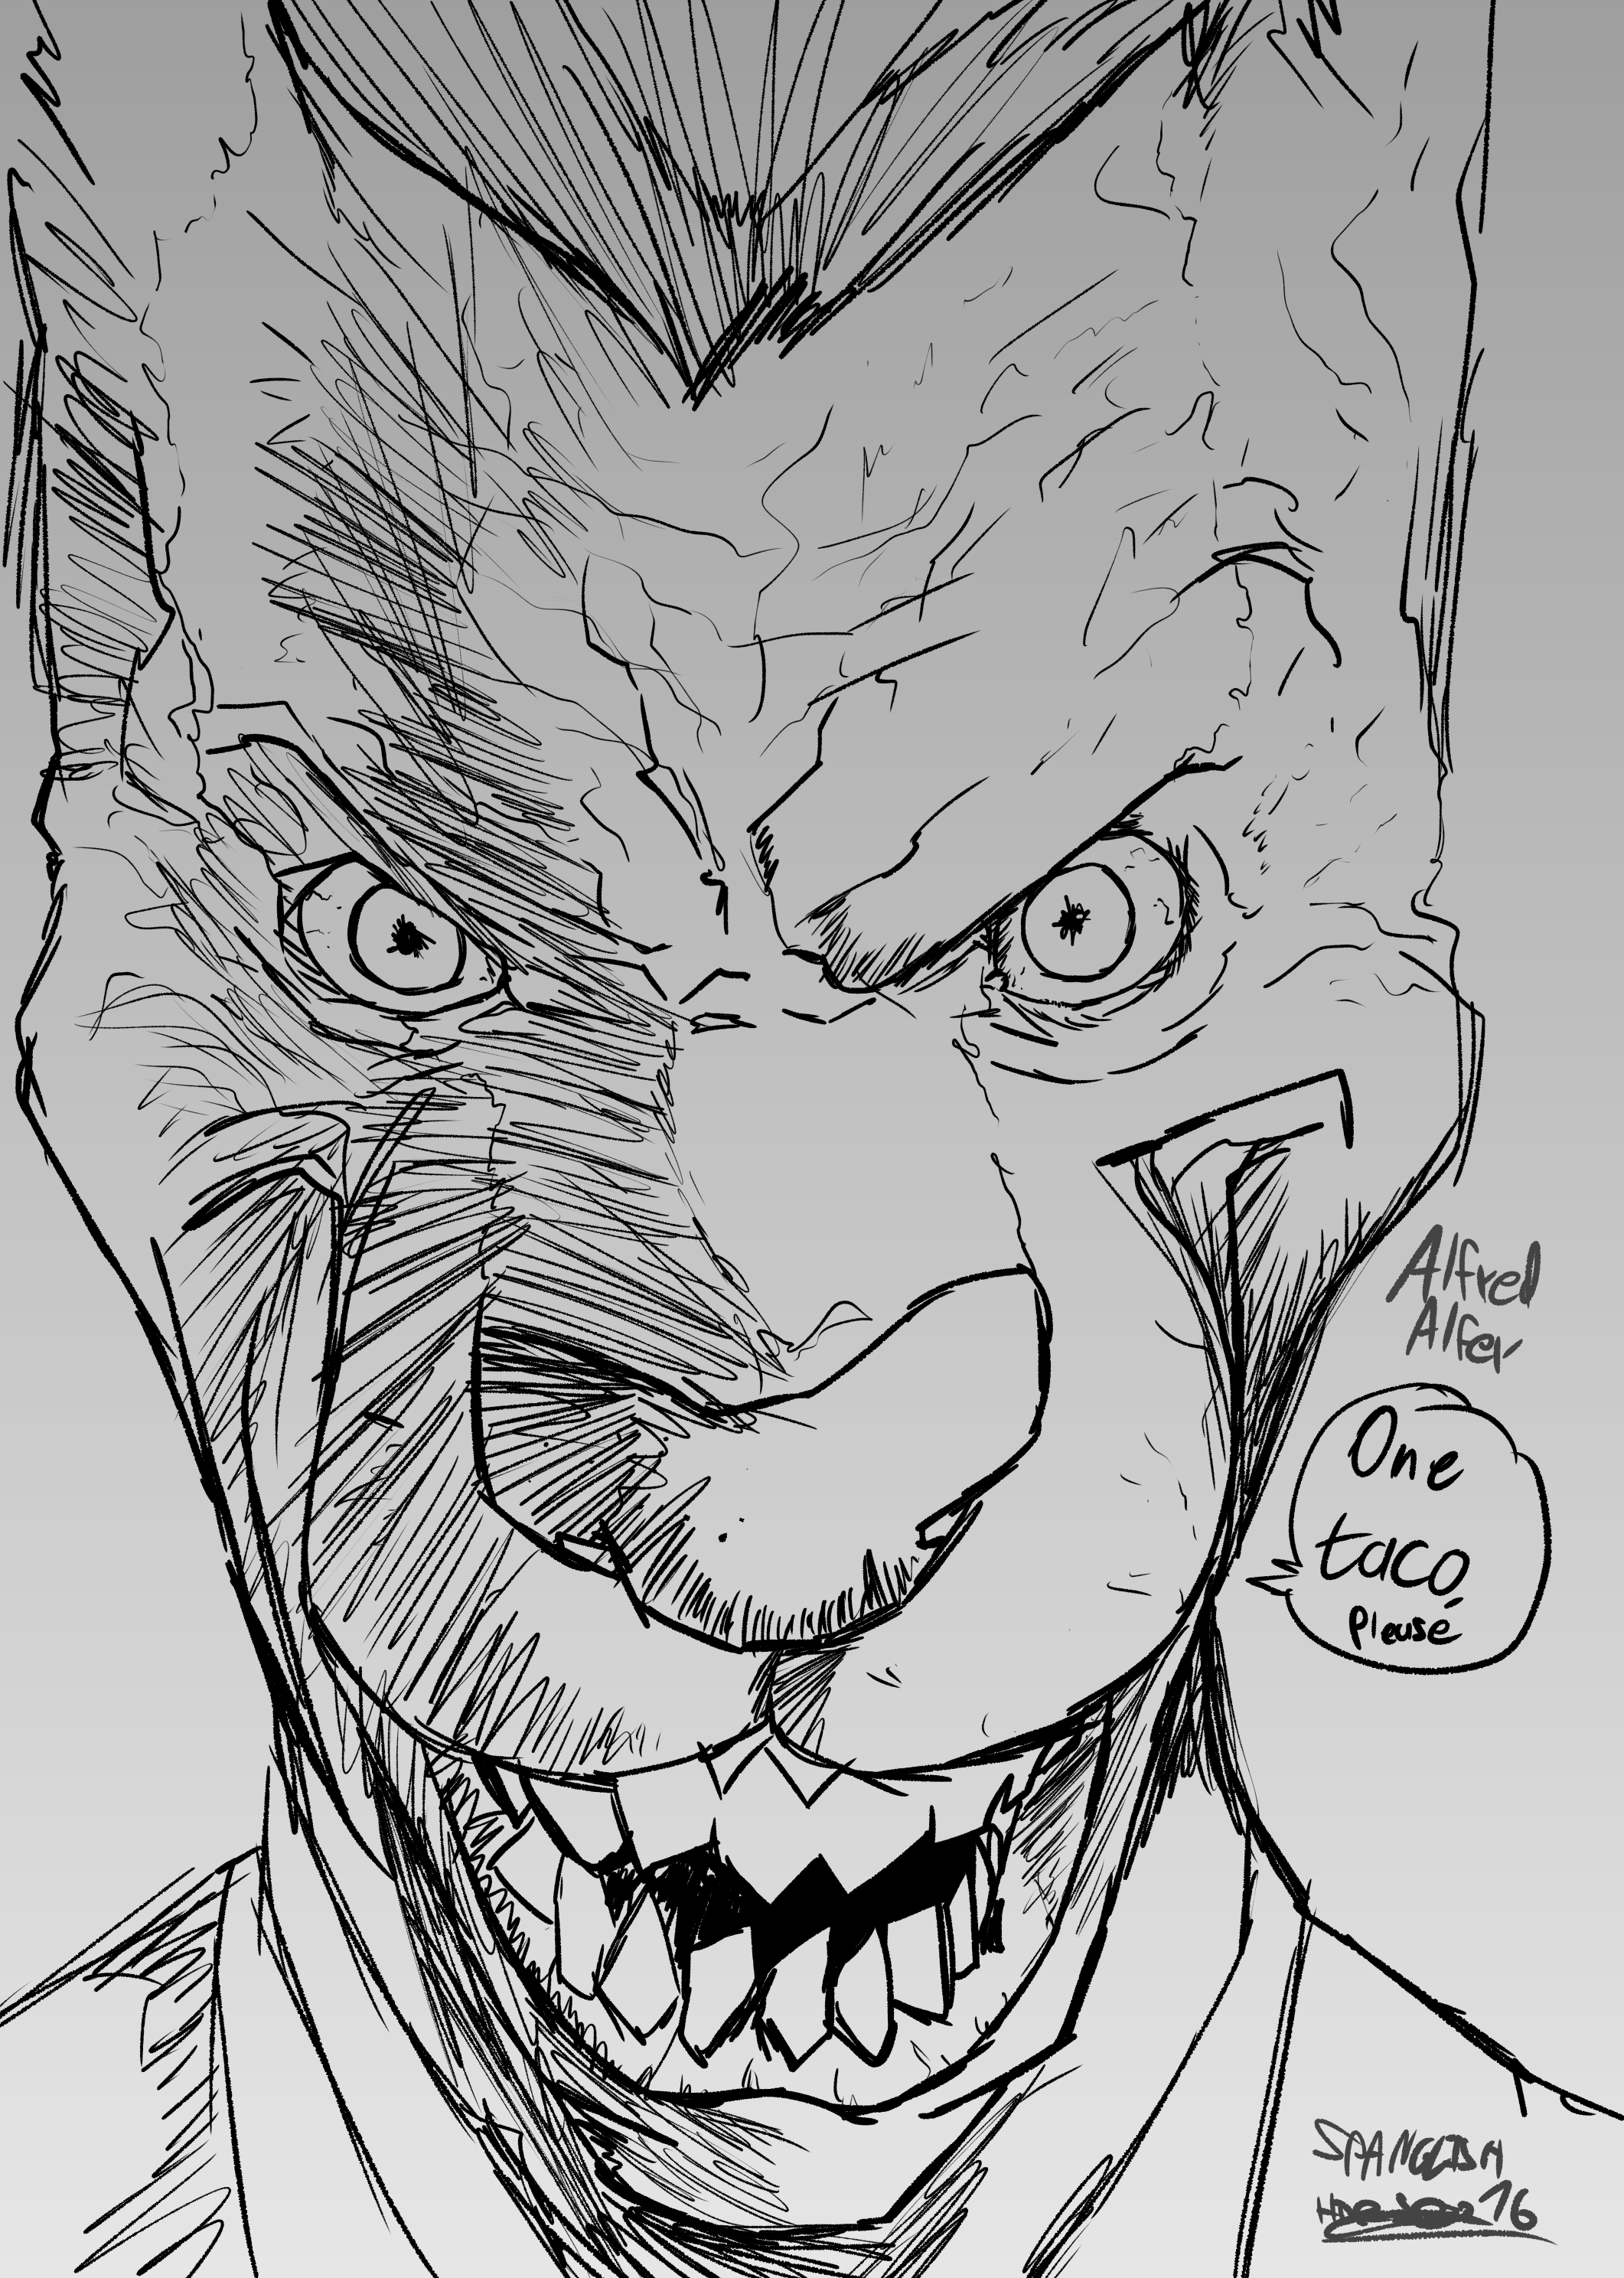 JOker endgame Inking try outs (alfred alfer version)